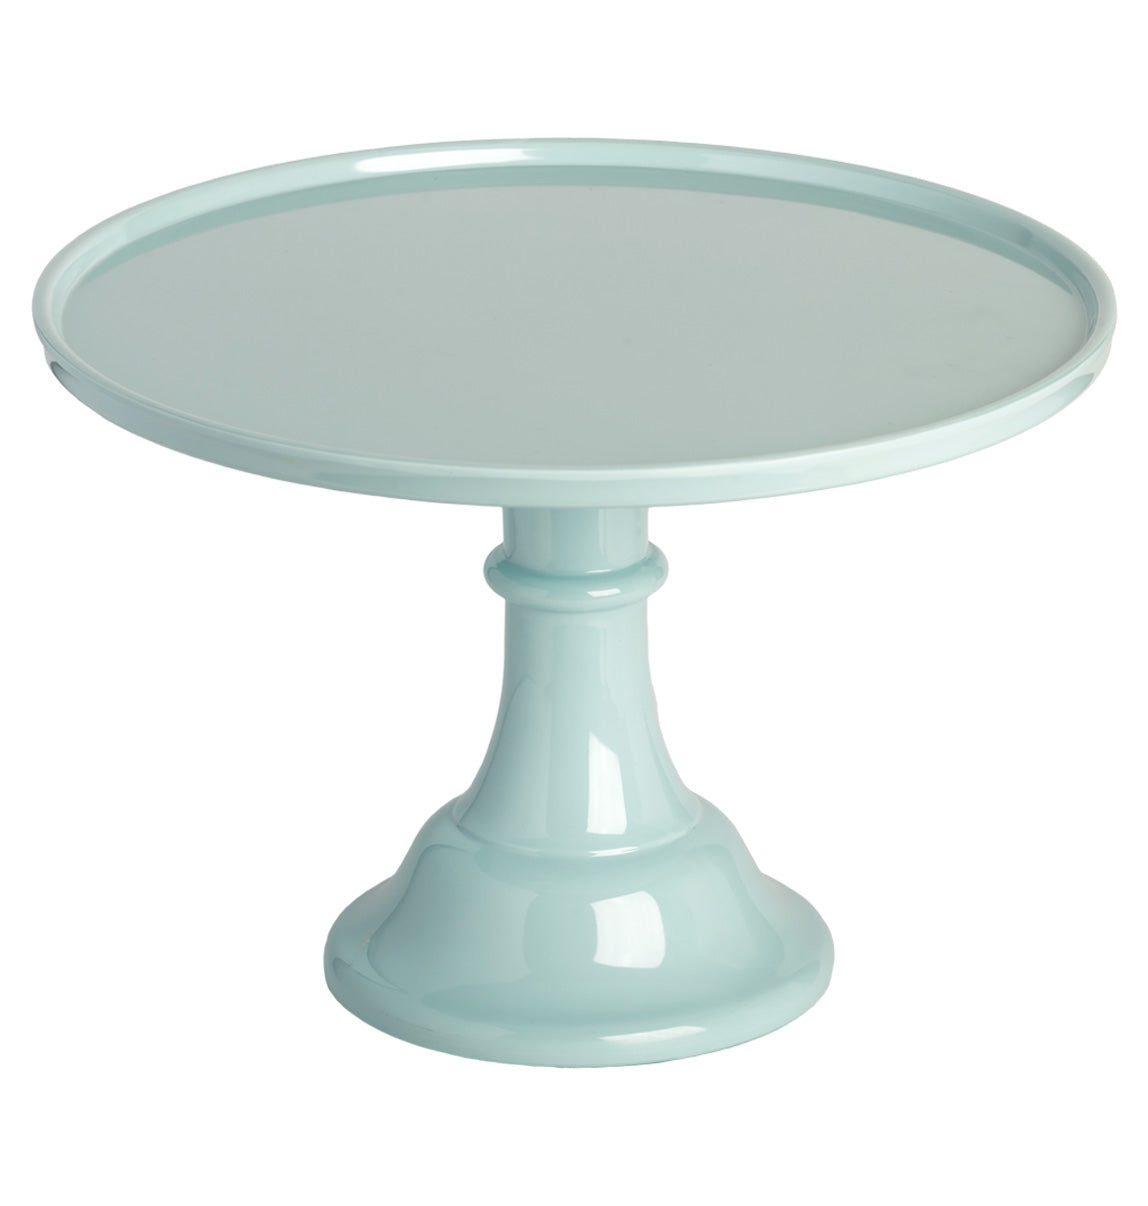 Classic Large Cake Stand - Vintage Blue